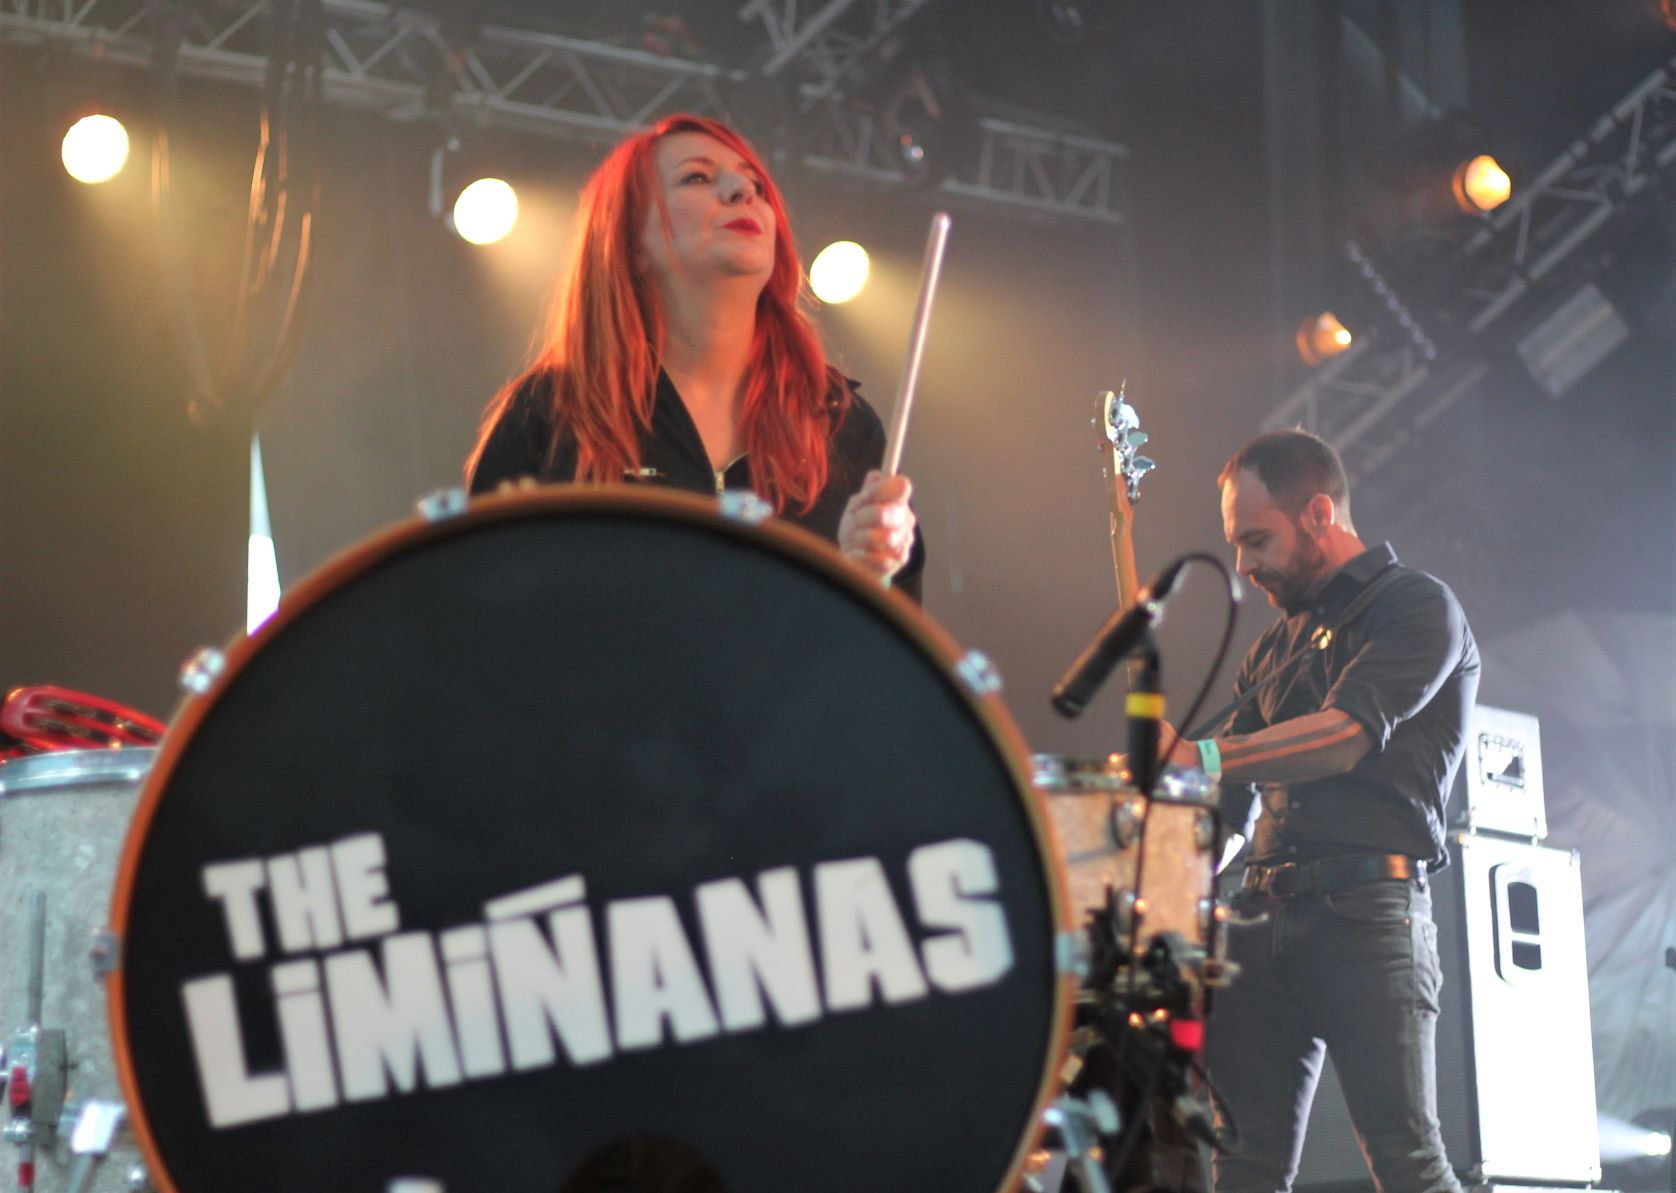 The Limiñanas Poupet 1er juillet 2019 photo 6 benoit weirdsound